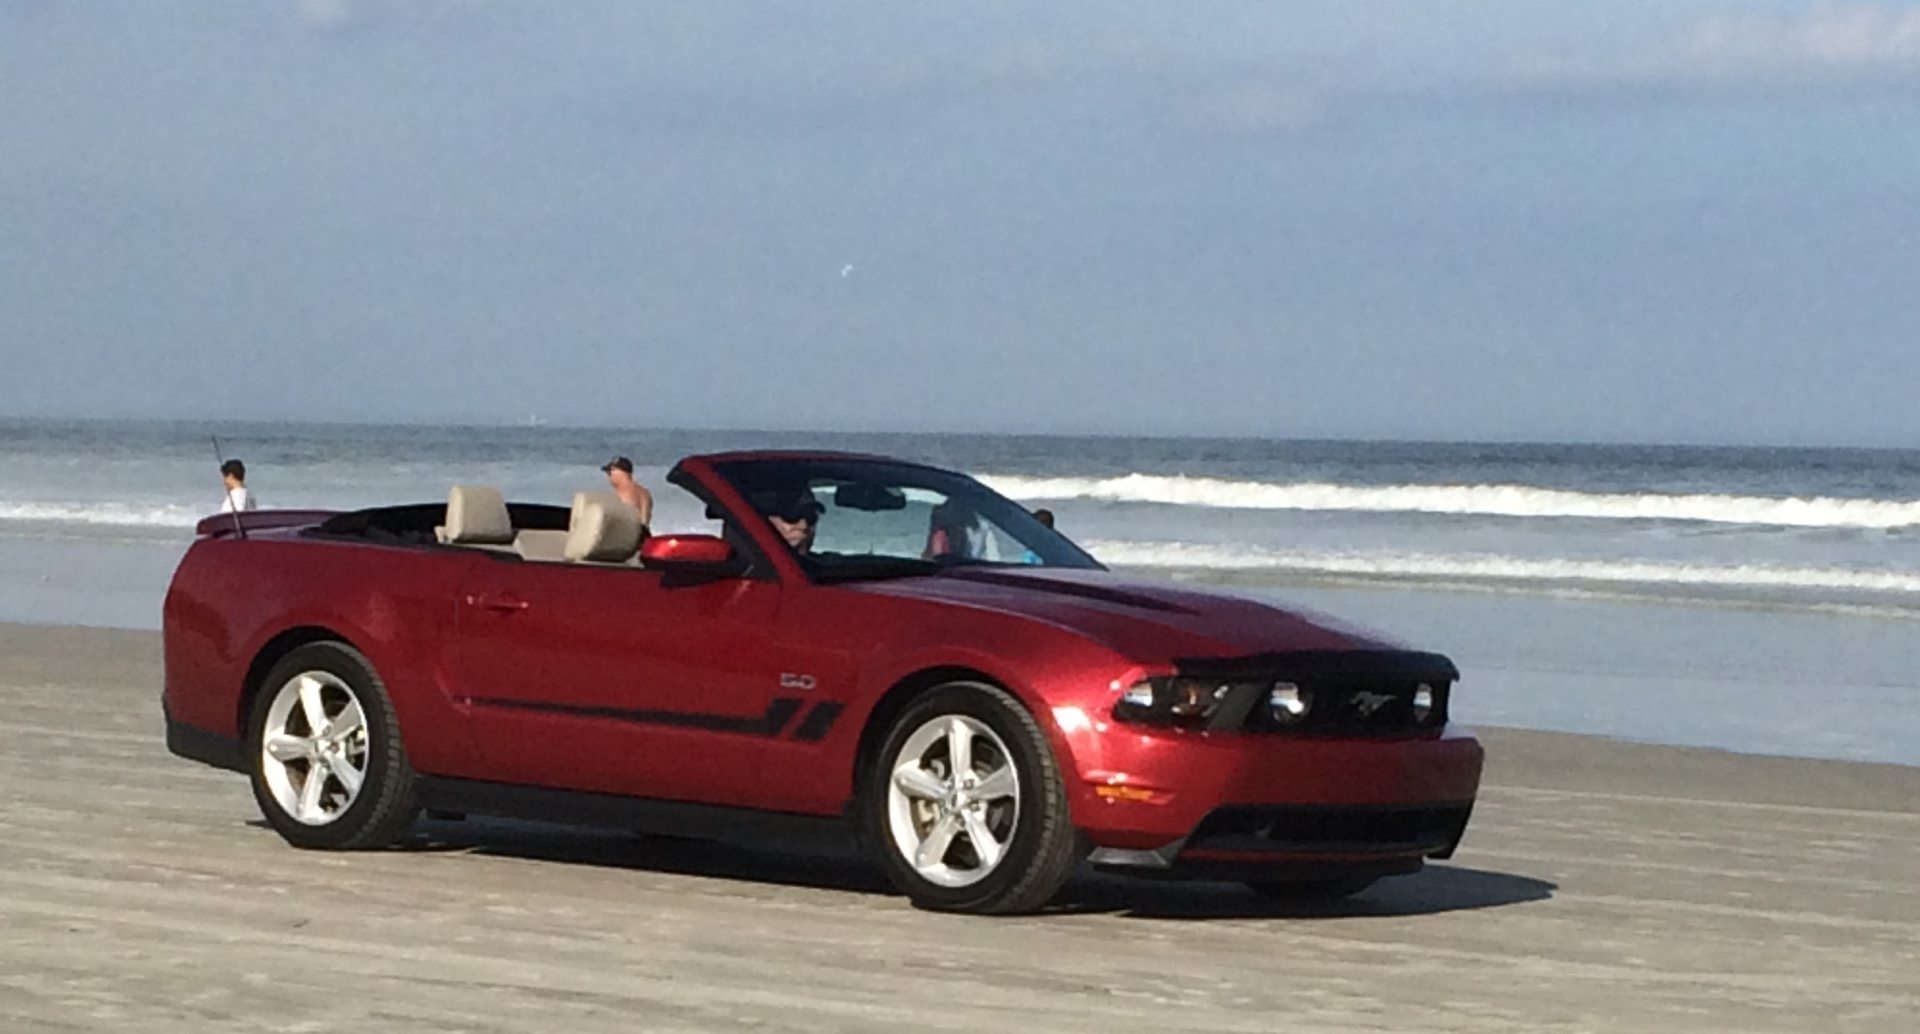 Drive on the Beach in New Smyrna!